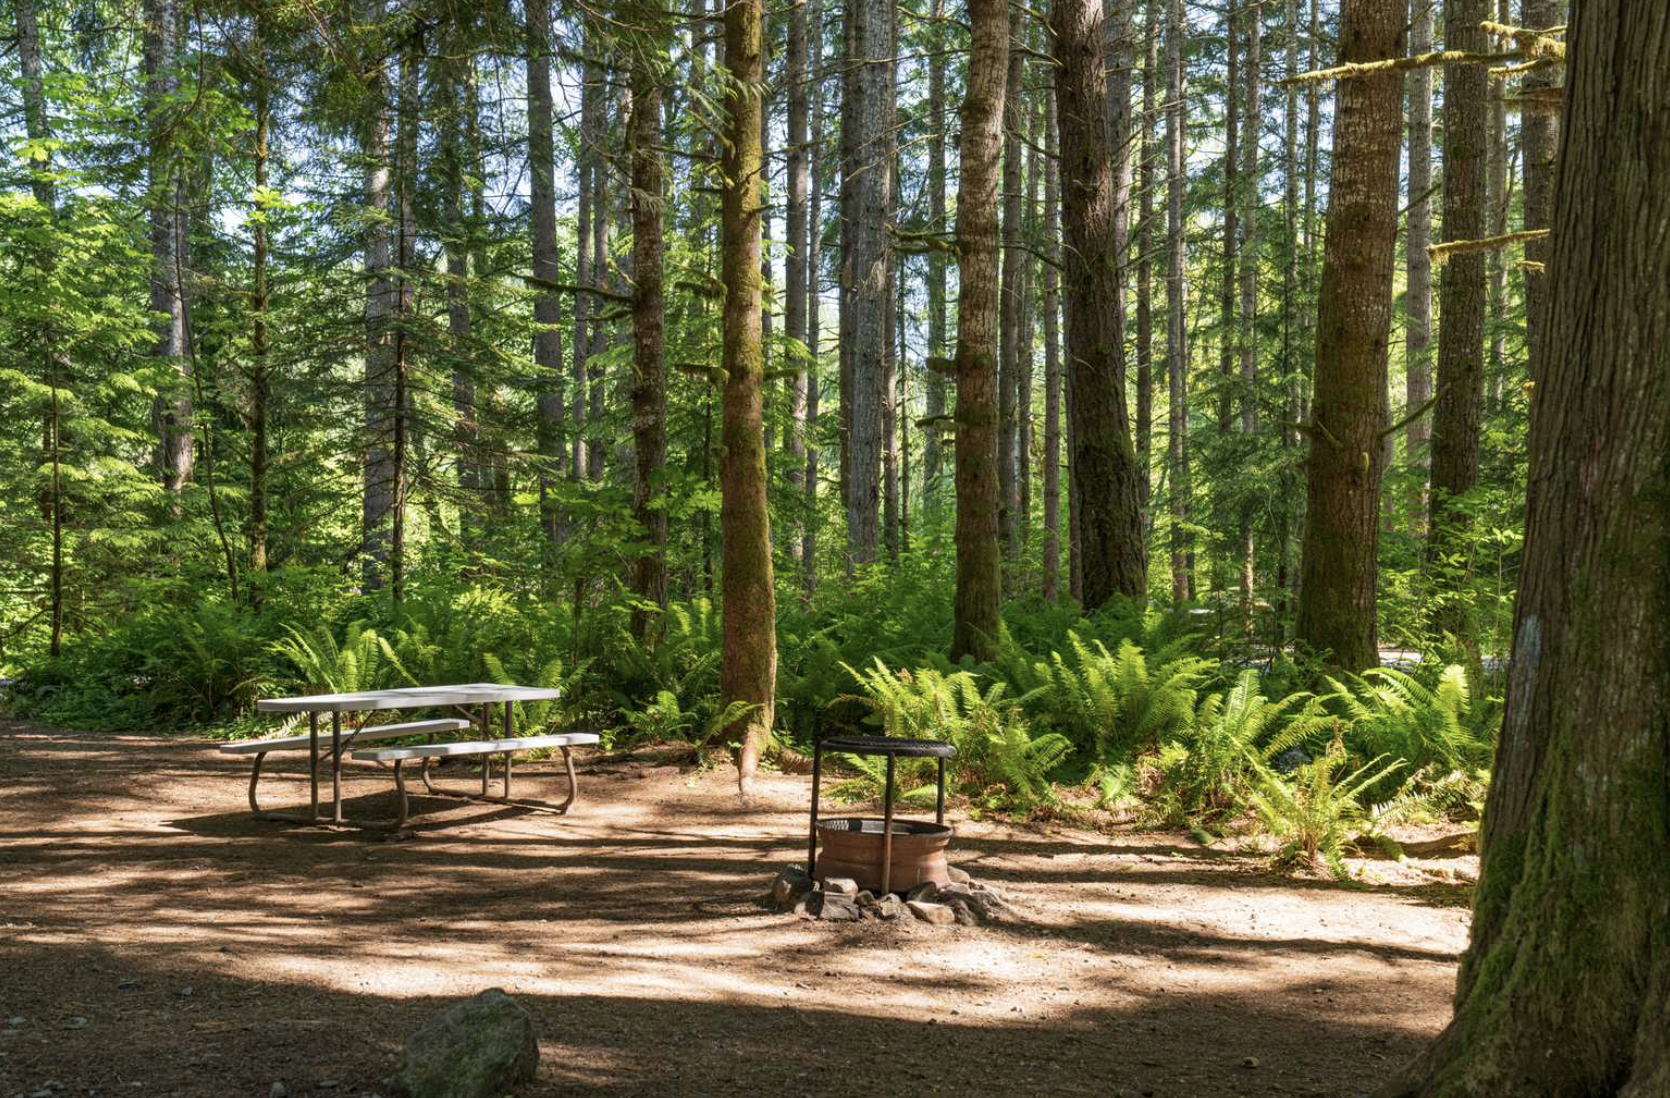 Secluded campsite in the woods with picnic table and fire pit at Elkamp Eastcrest